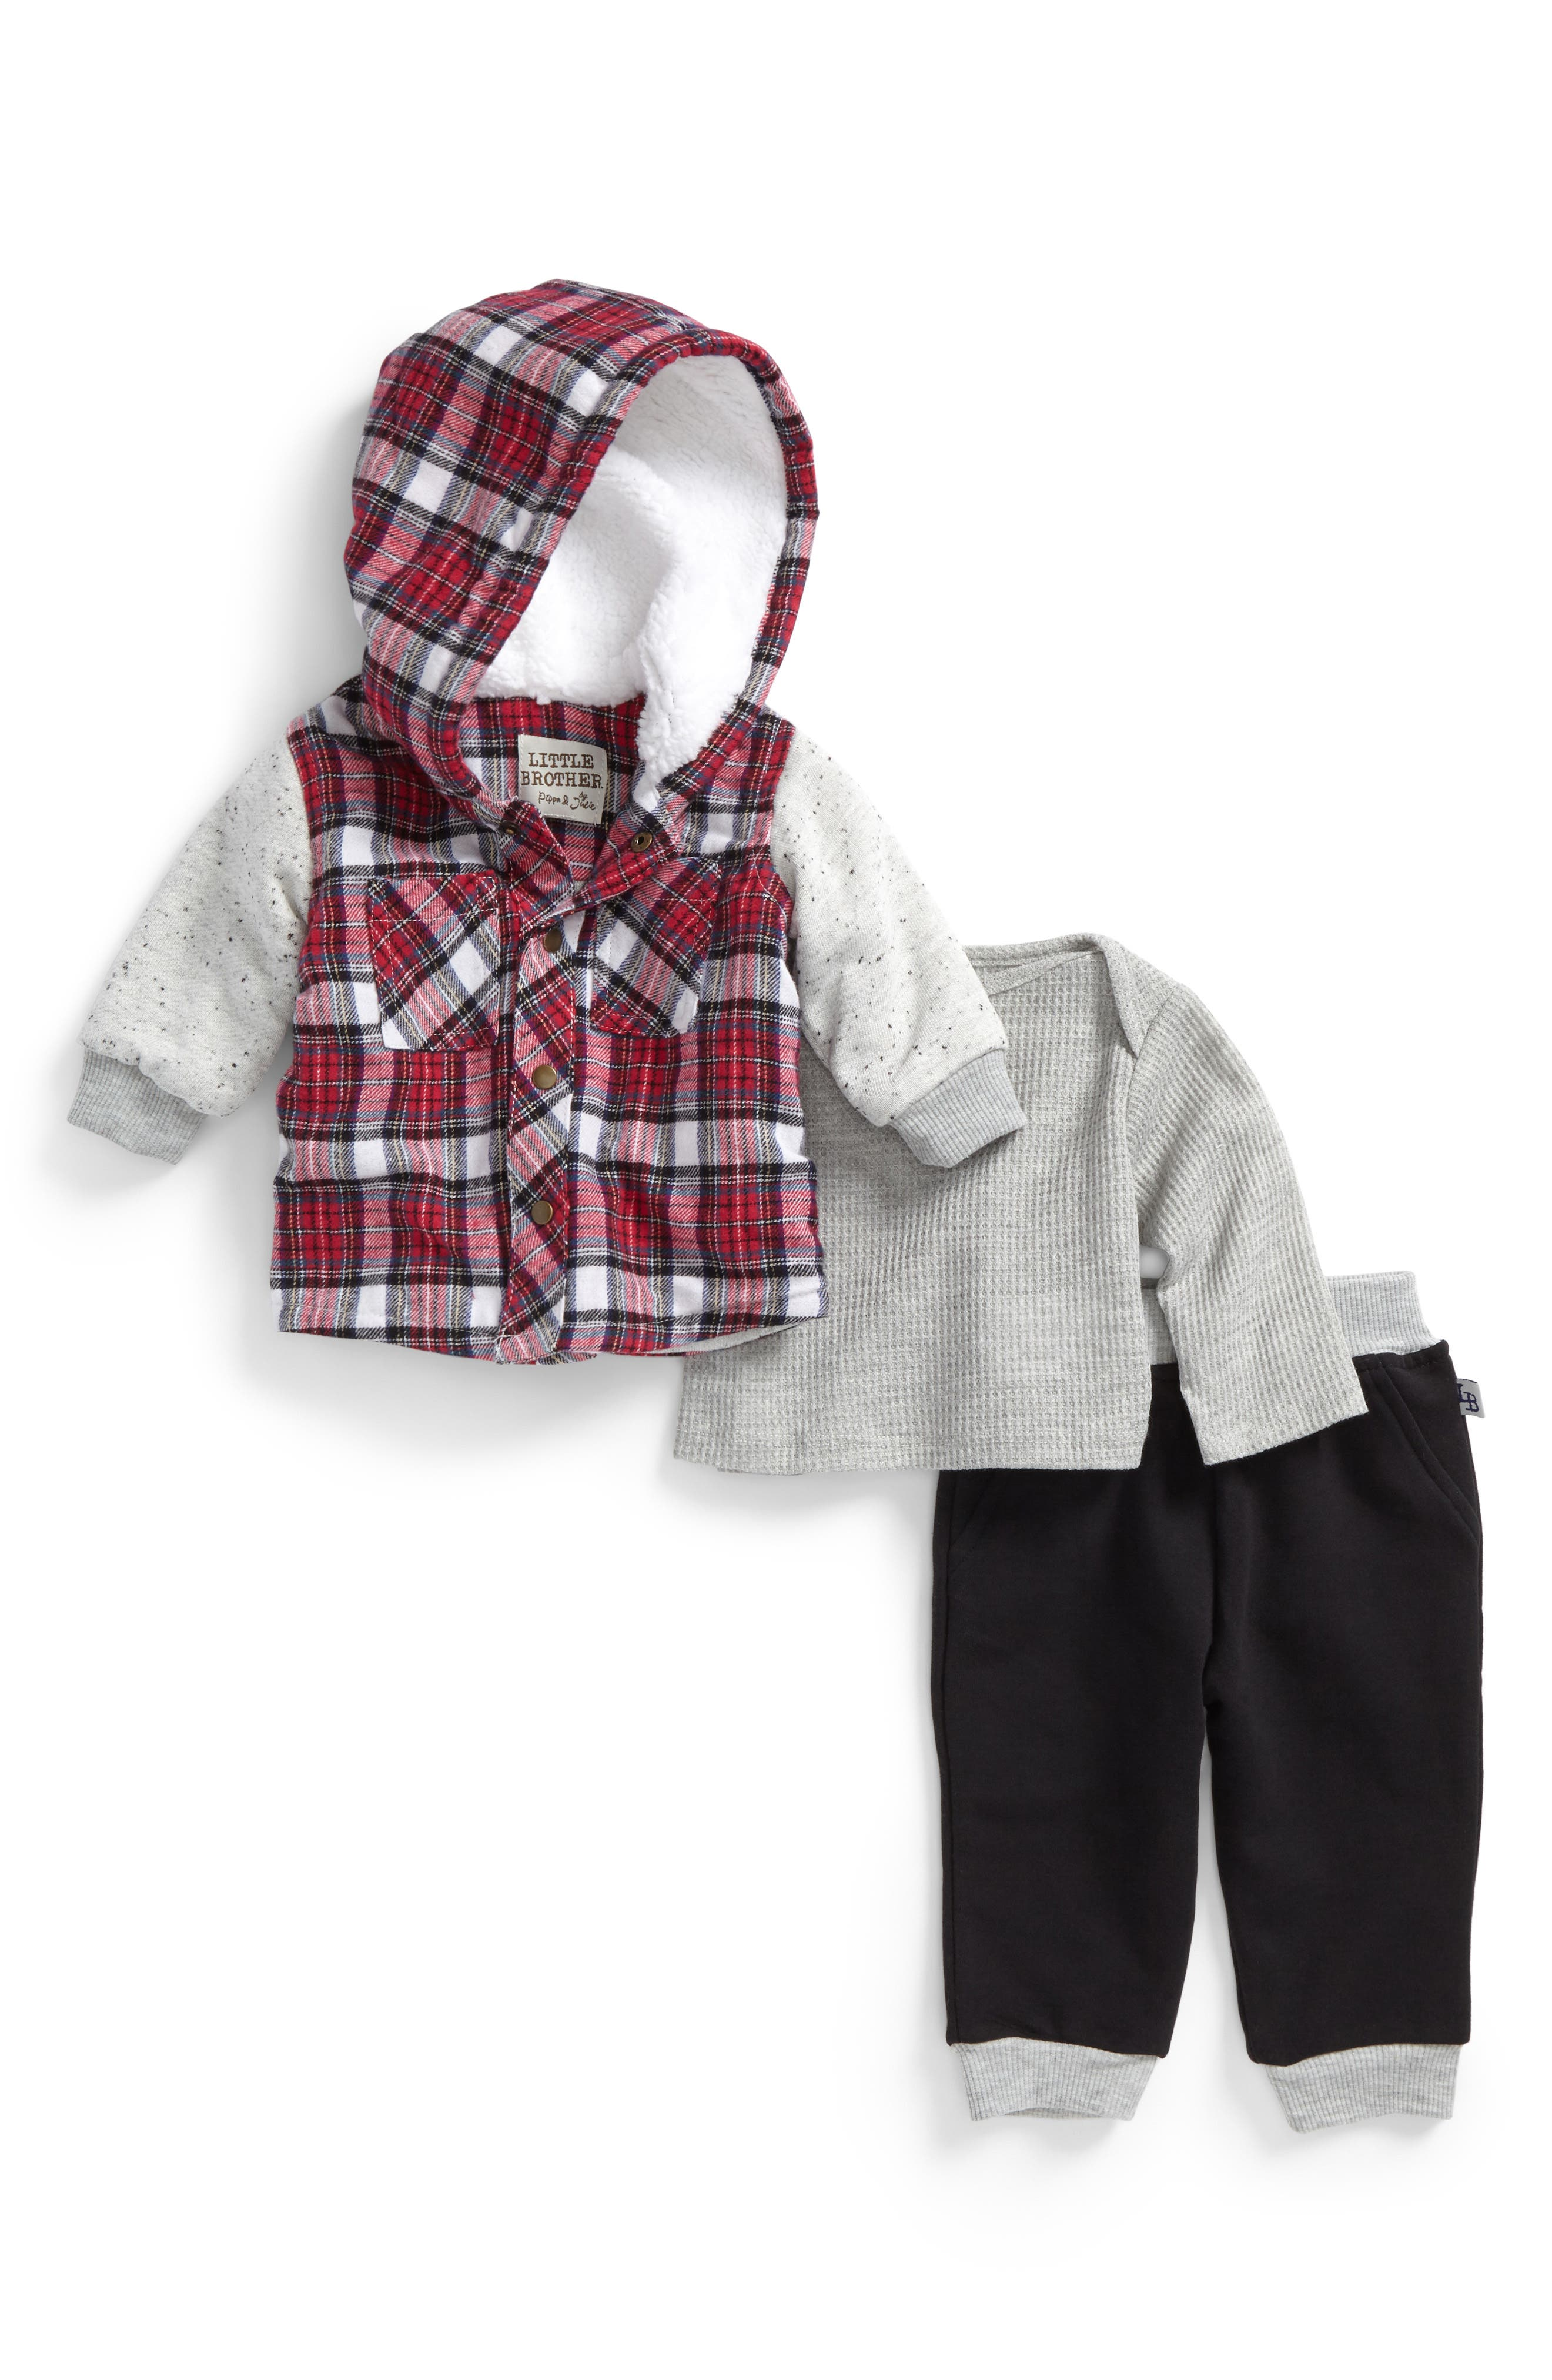 Main Image - Little Brother by Pippa & Julie Hooded Jacket, Knit Top & Sweatpants Set (Baby Boys)